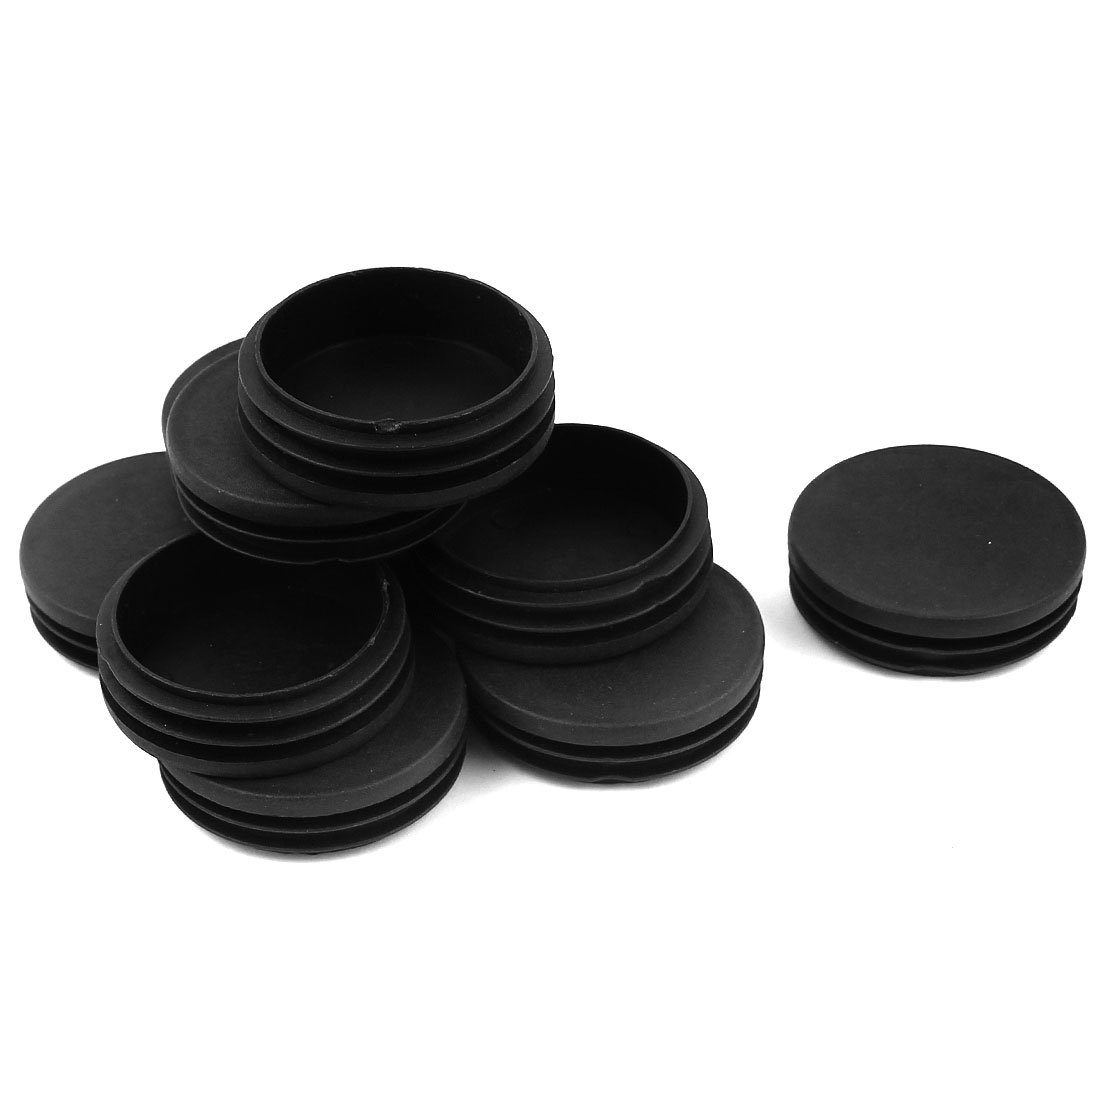 10 Pcs Black Plastic 58mm Dia Round Tubing Tube Insert Caps Covers